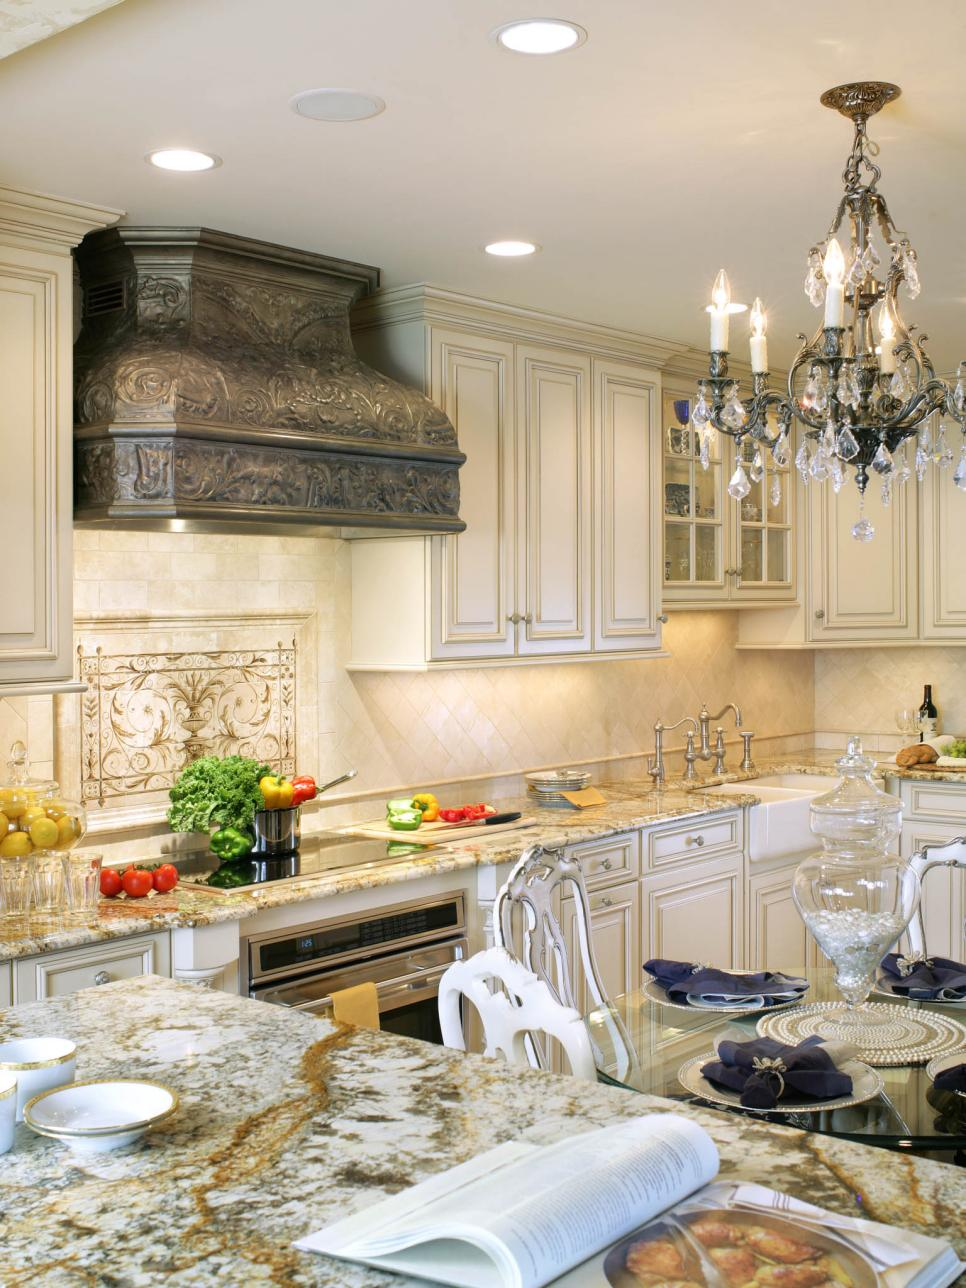 White Kitchen Design 2014 pictures of the year's best kitchens: nkba kitchen design